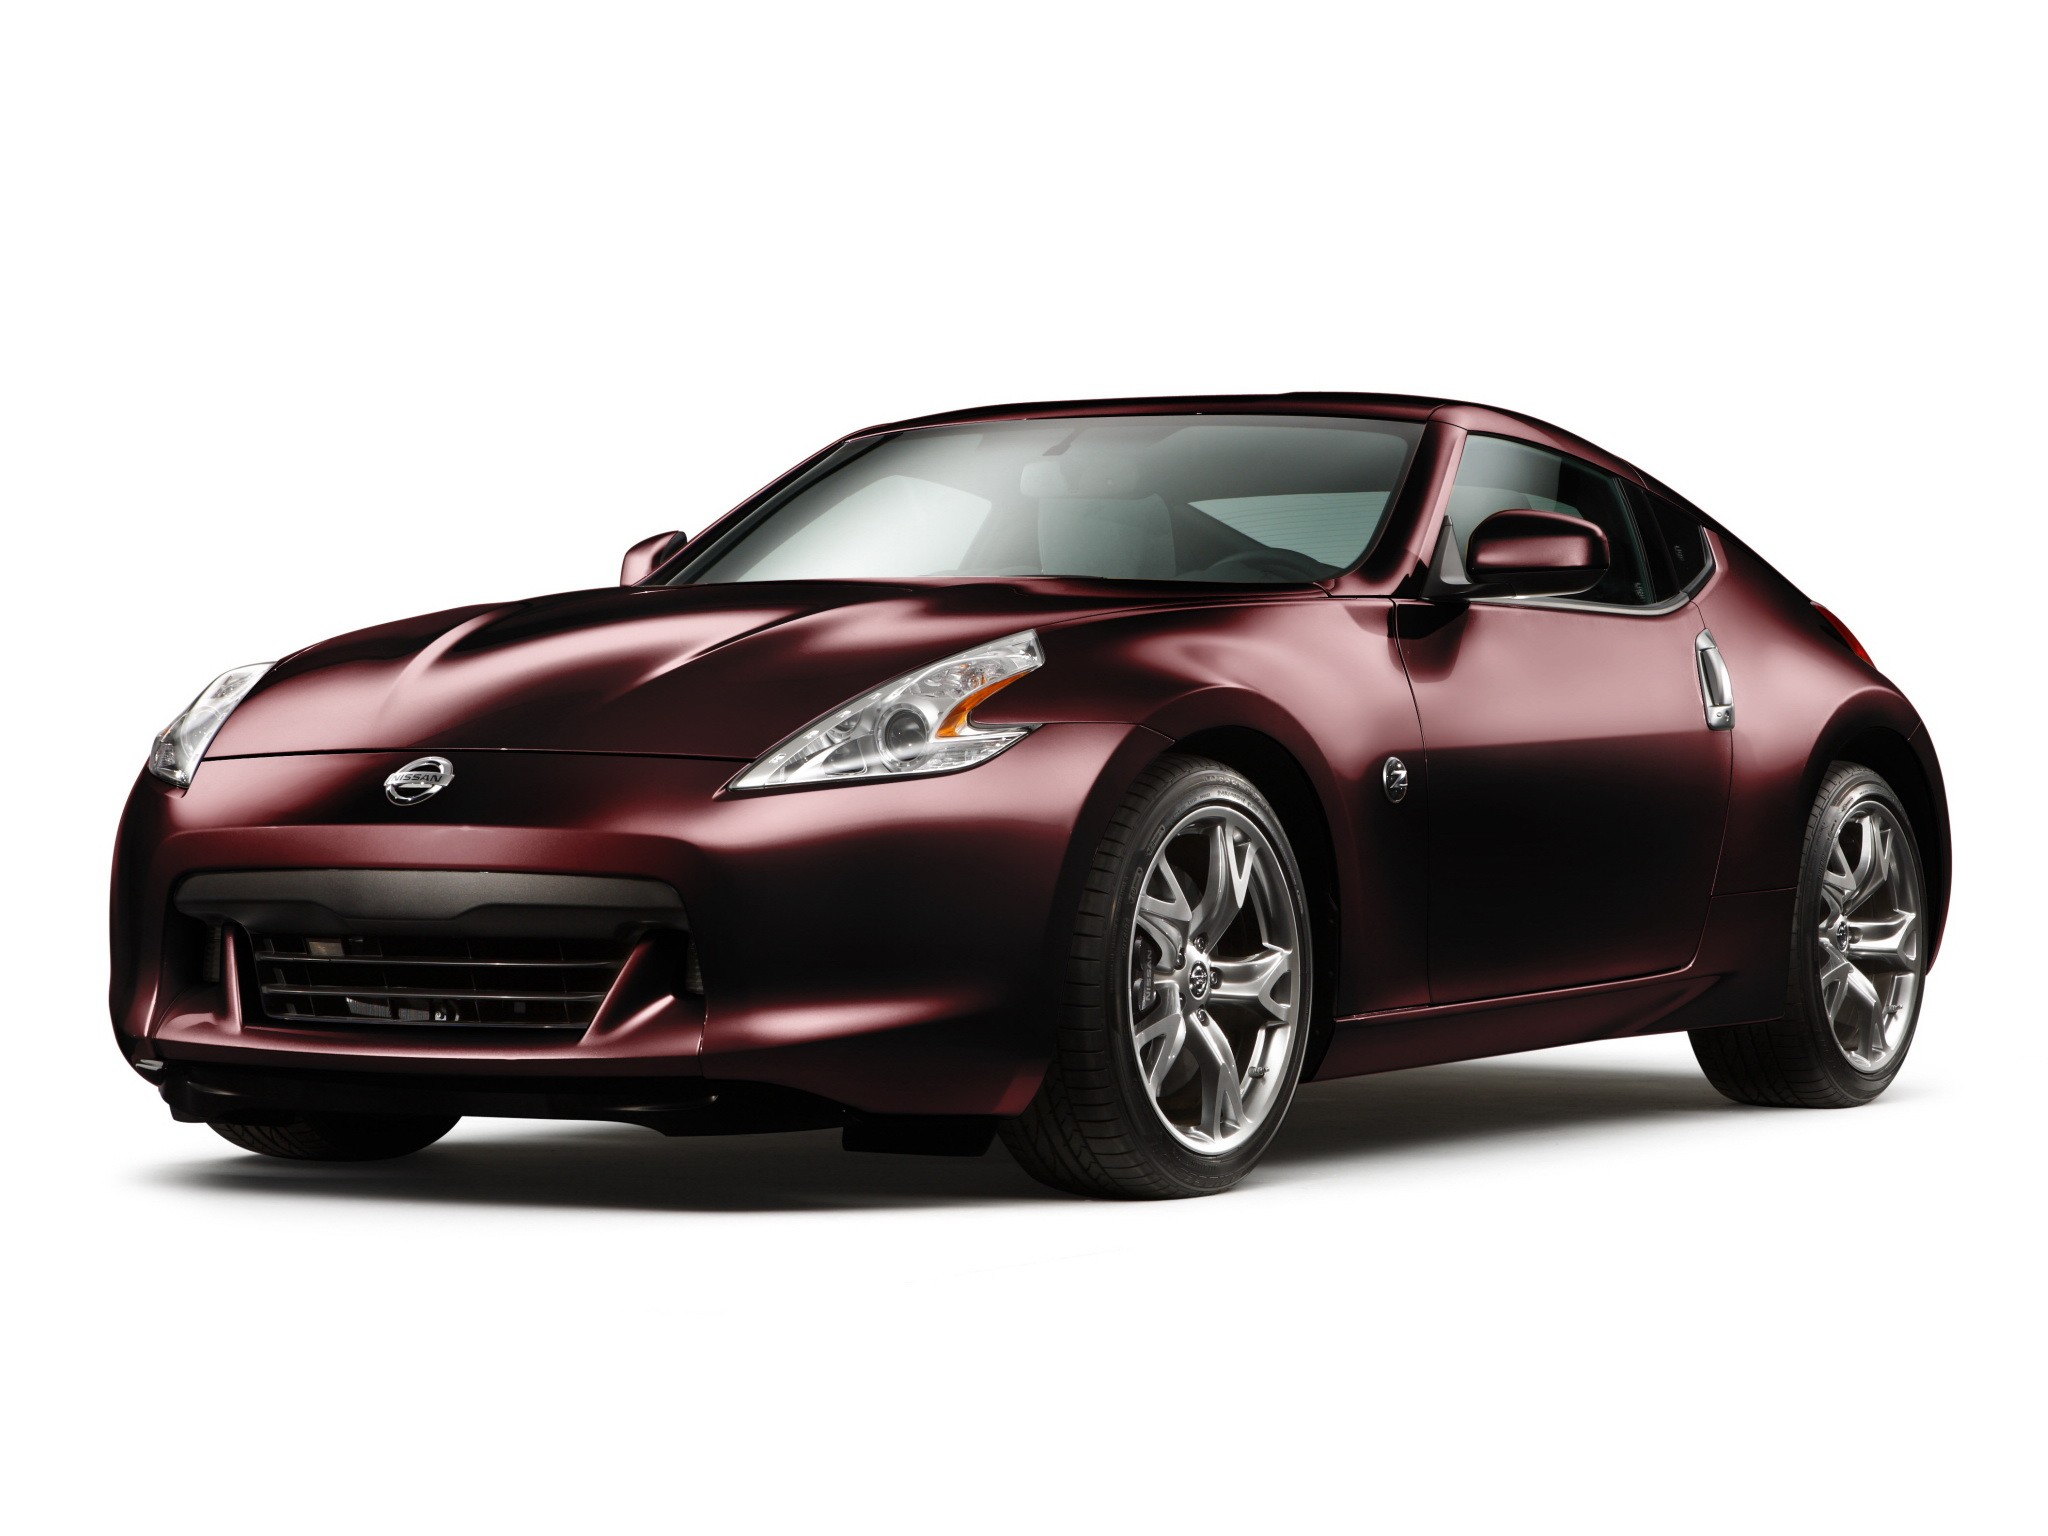 nissan 370z specs 2008 2009 2010 2011 2012. Black Bedroom Furniture Sets. Home Design Ideas